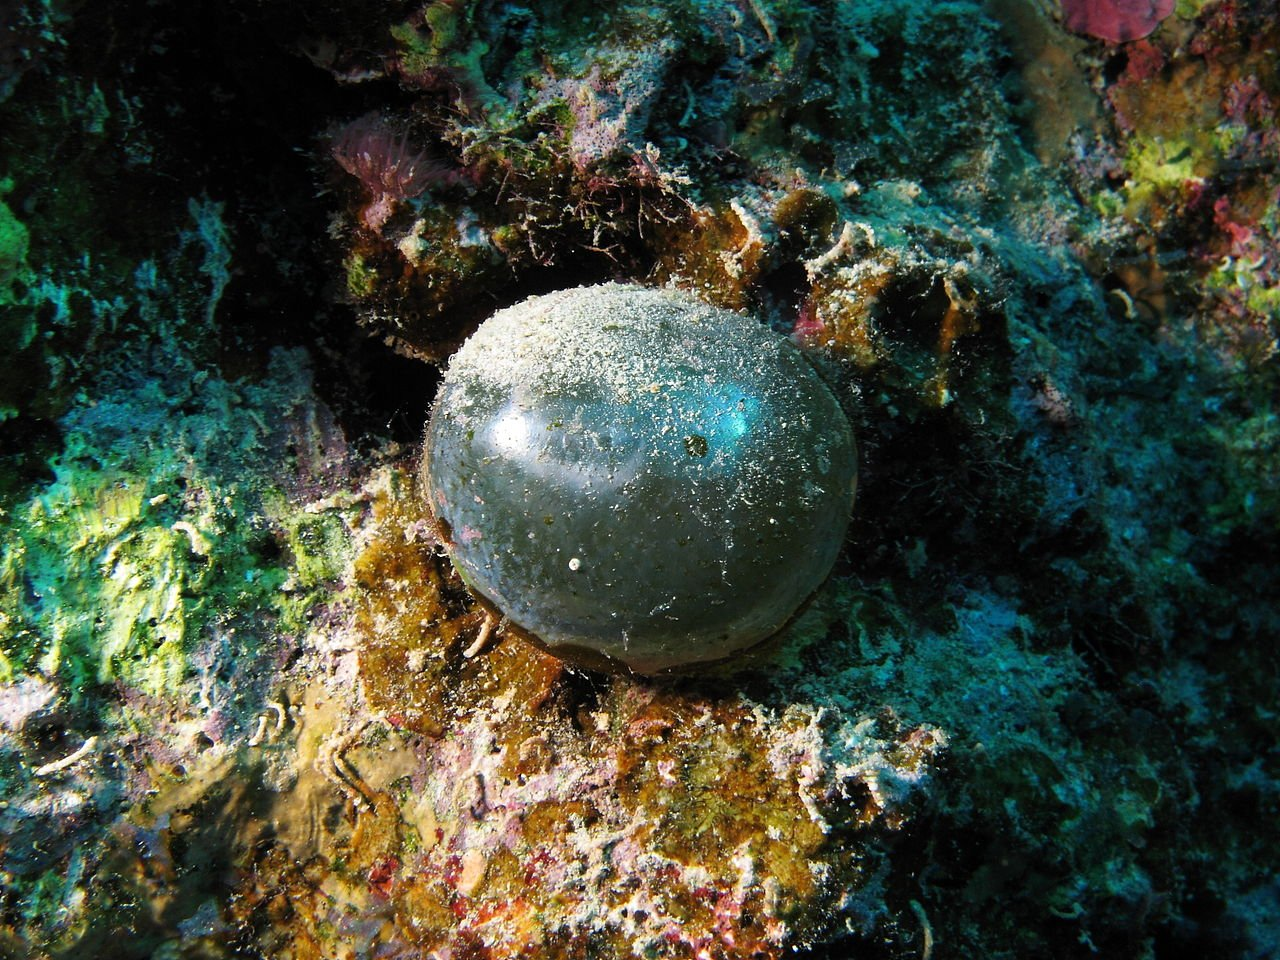 1280px Valonia ventricosa in the Red Sea